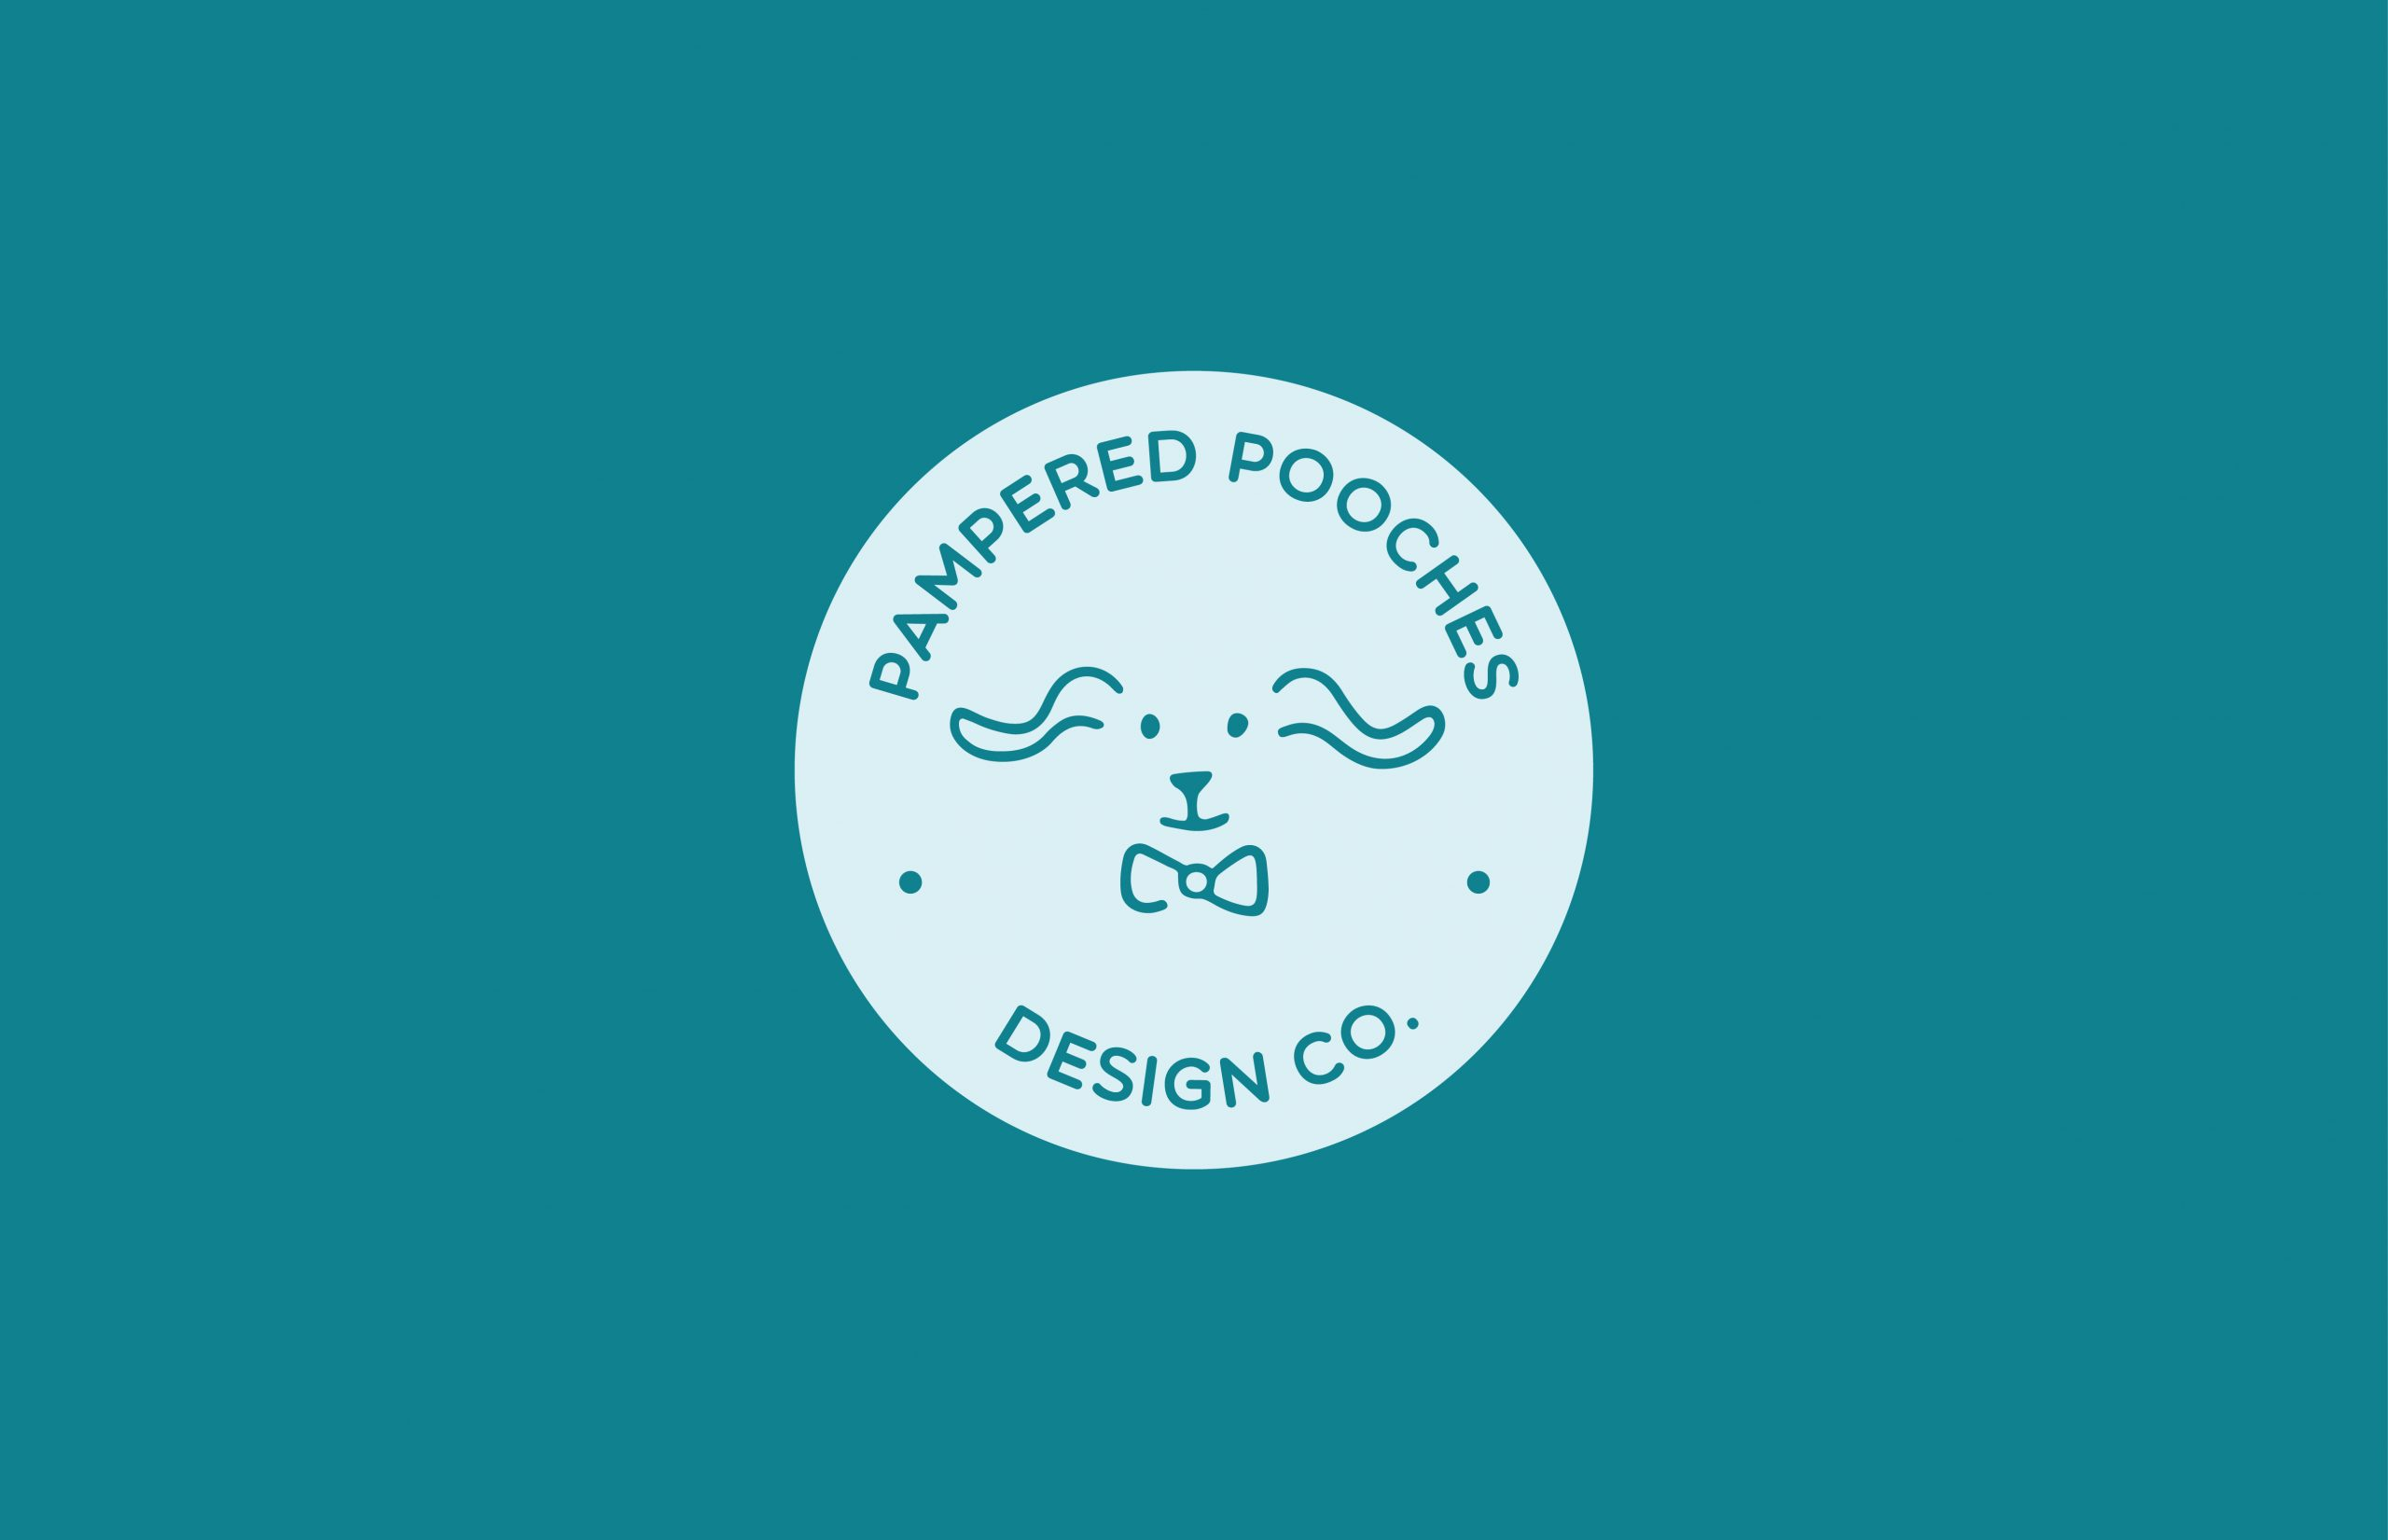 Pampered Pooches Design Company logo